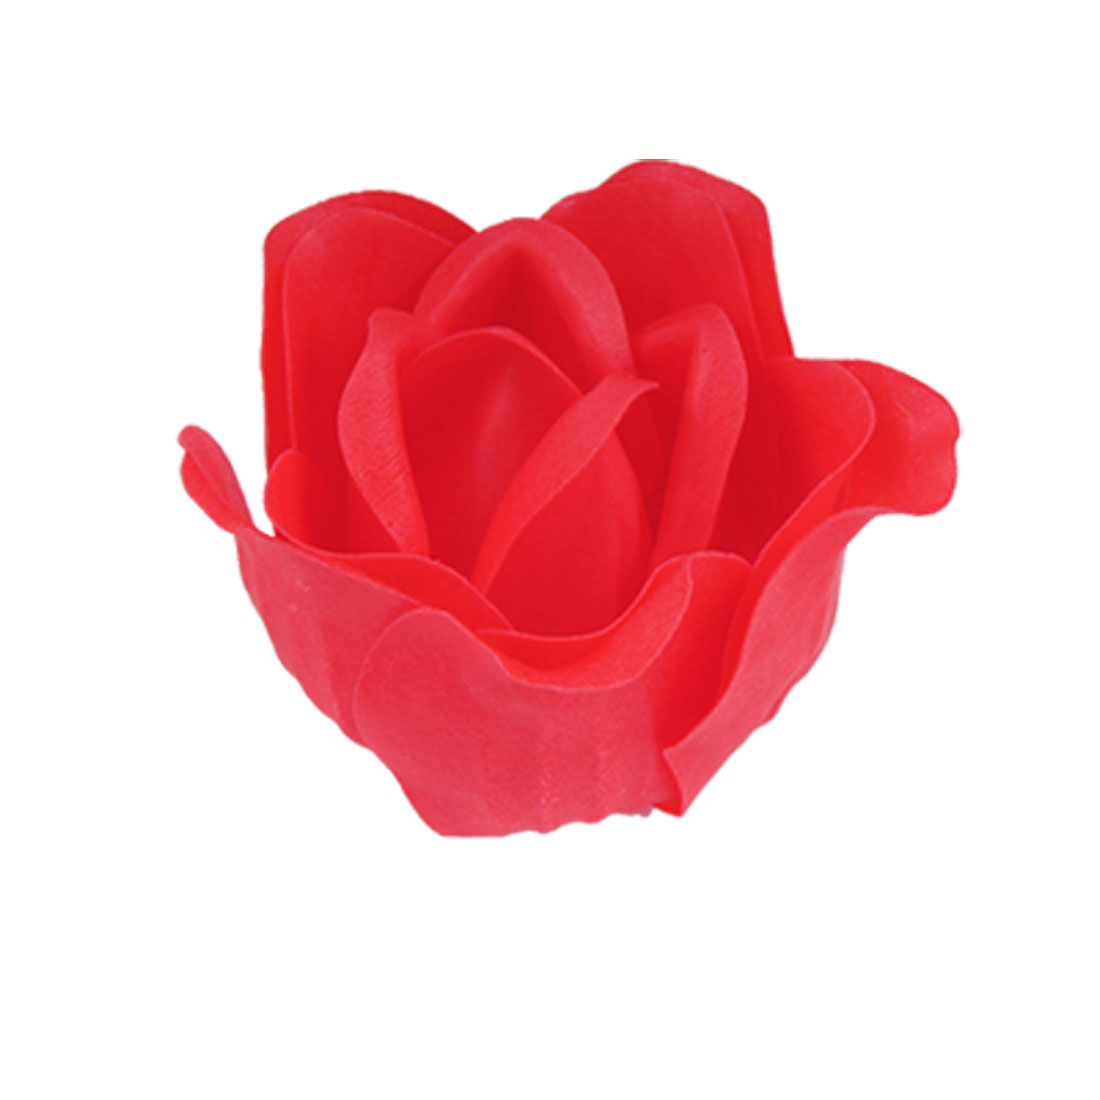 Red Rose Flower Design Bath Bathing Soap Petals Favors